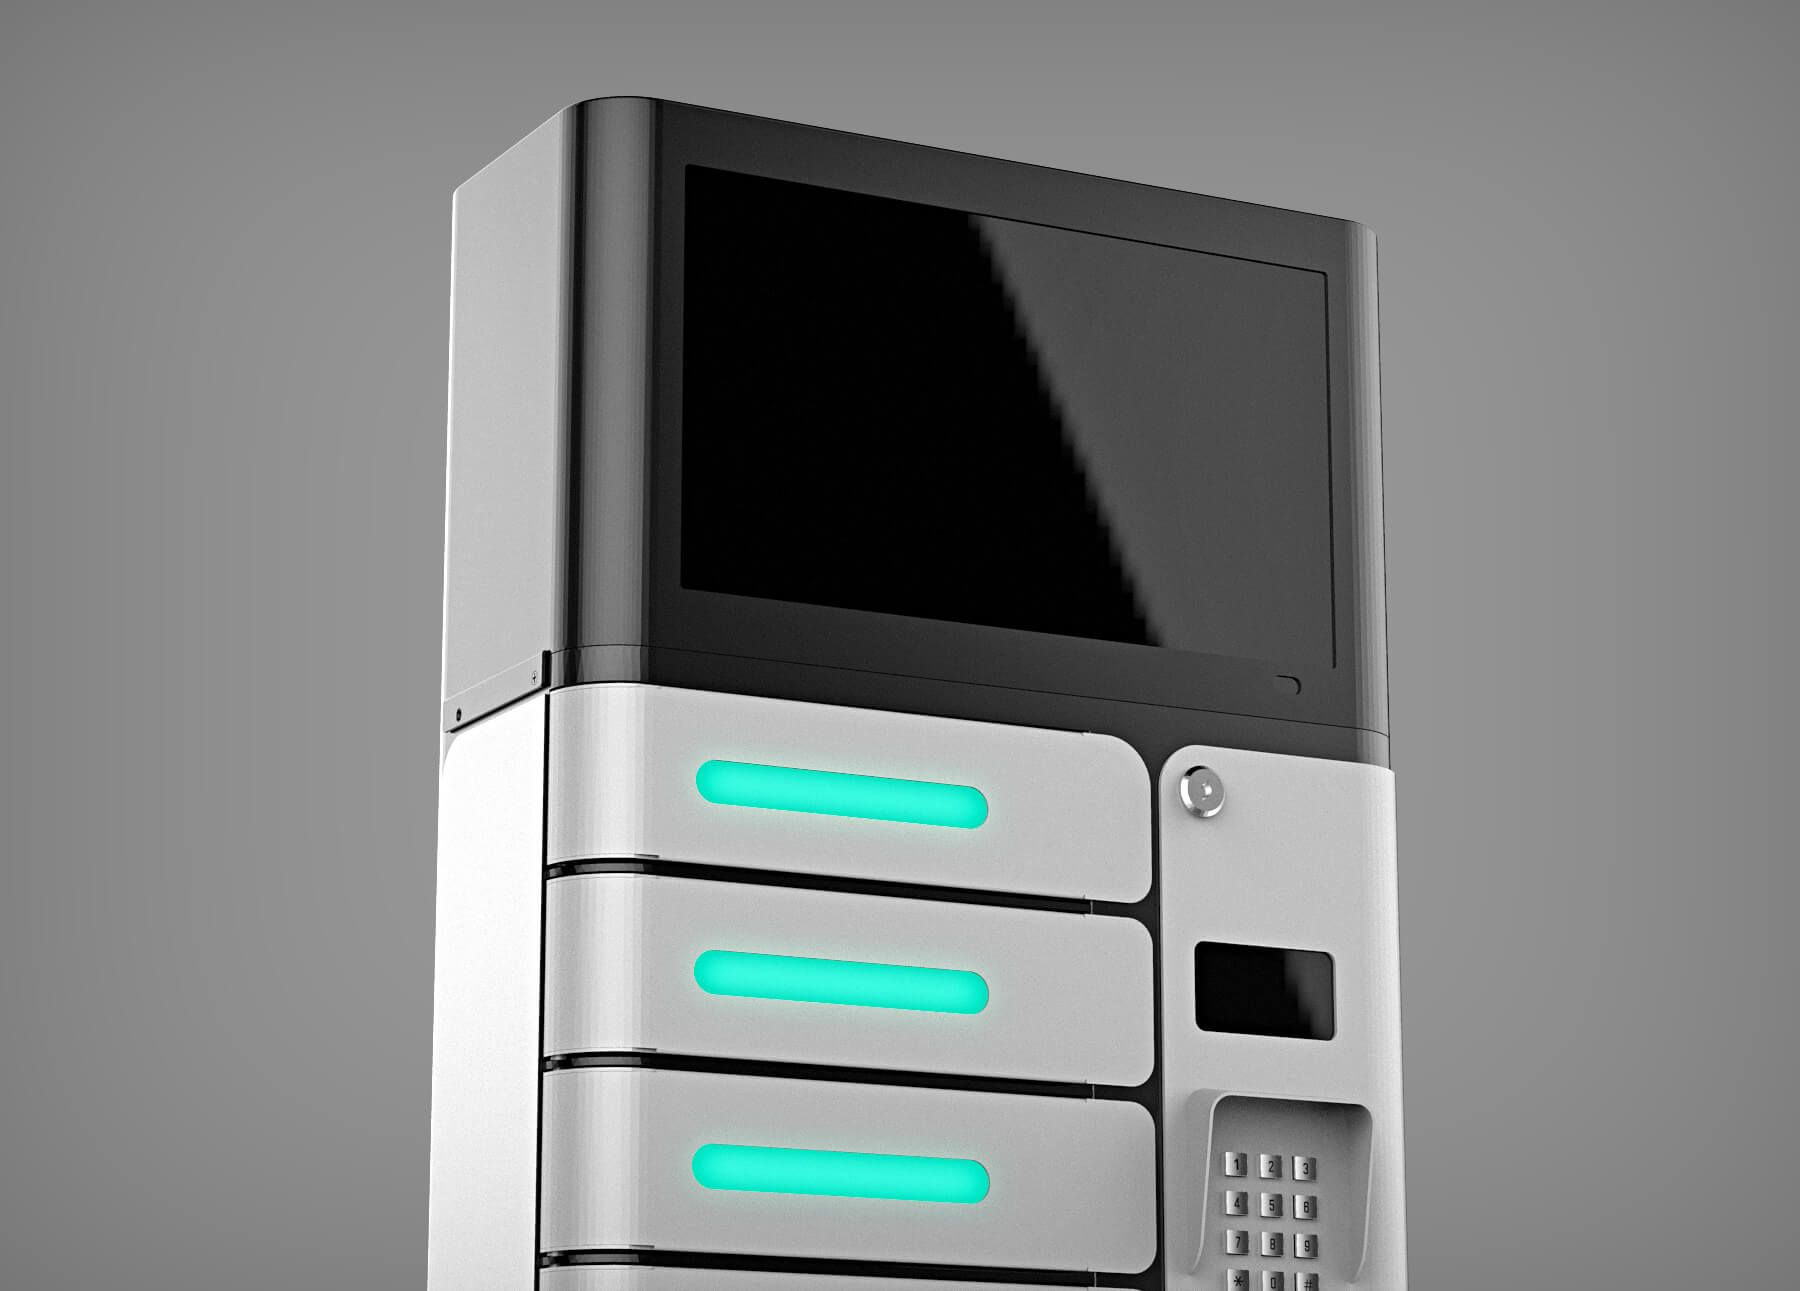 Cell Phone Locker In 2020 Cell Phone Charging Station Phone Charging Phone Charging Stations